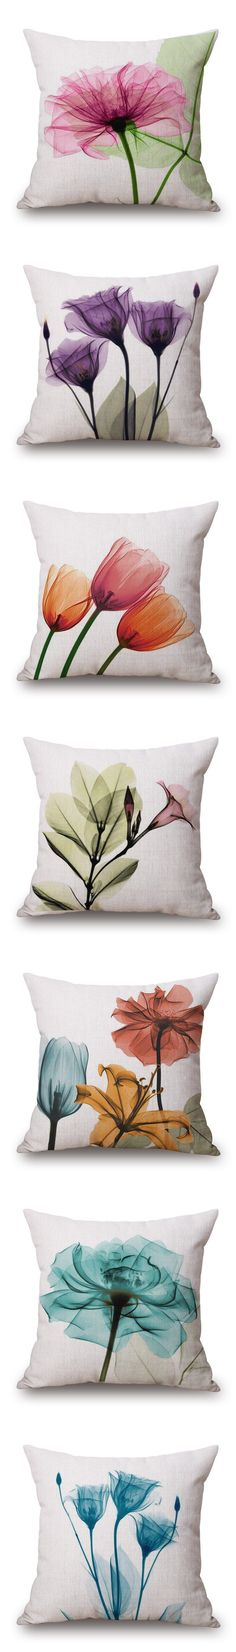 tender flowers .. pillow cases